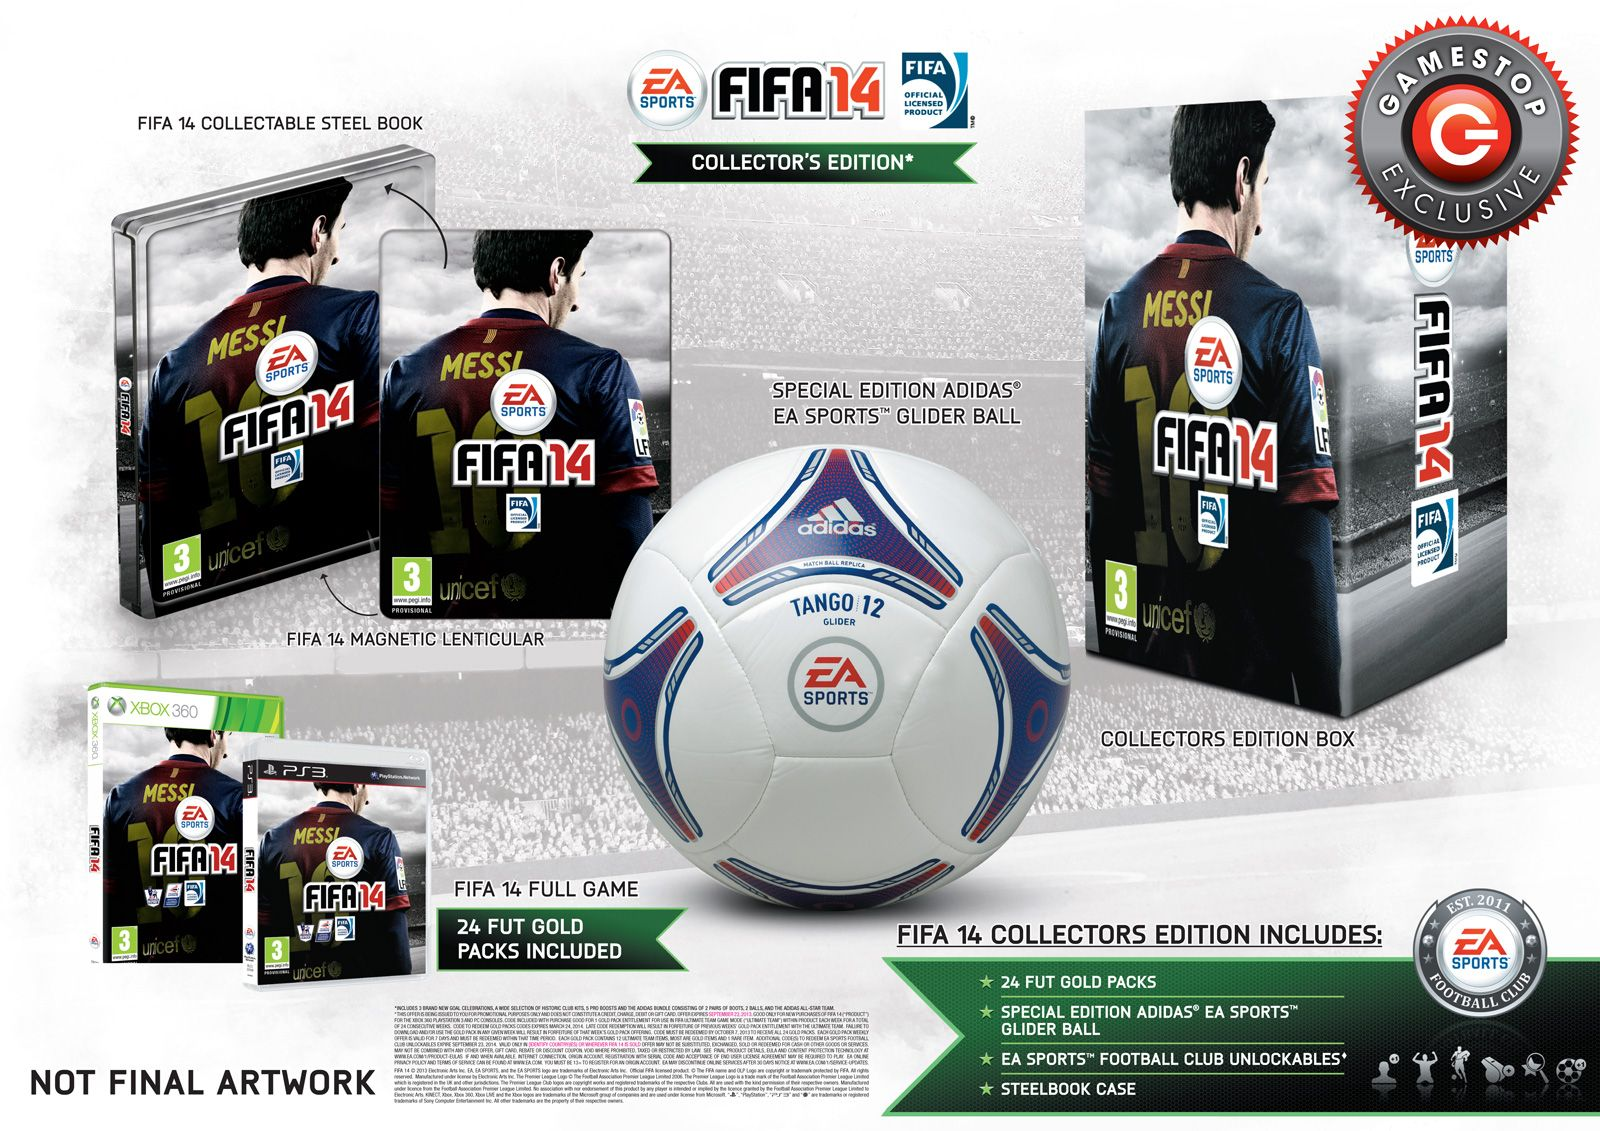 The Gamestop Exclusive Fifa 14 Collector S Edition Comes With A Real Life Special Edition Adidas Ea Sports Glider Foot Fifa Ultimate Team Ea Sports Nfl Network